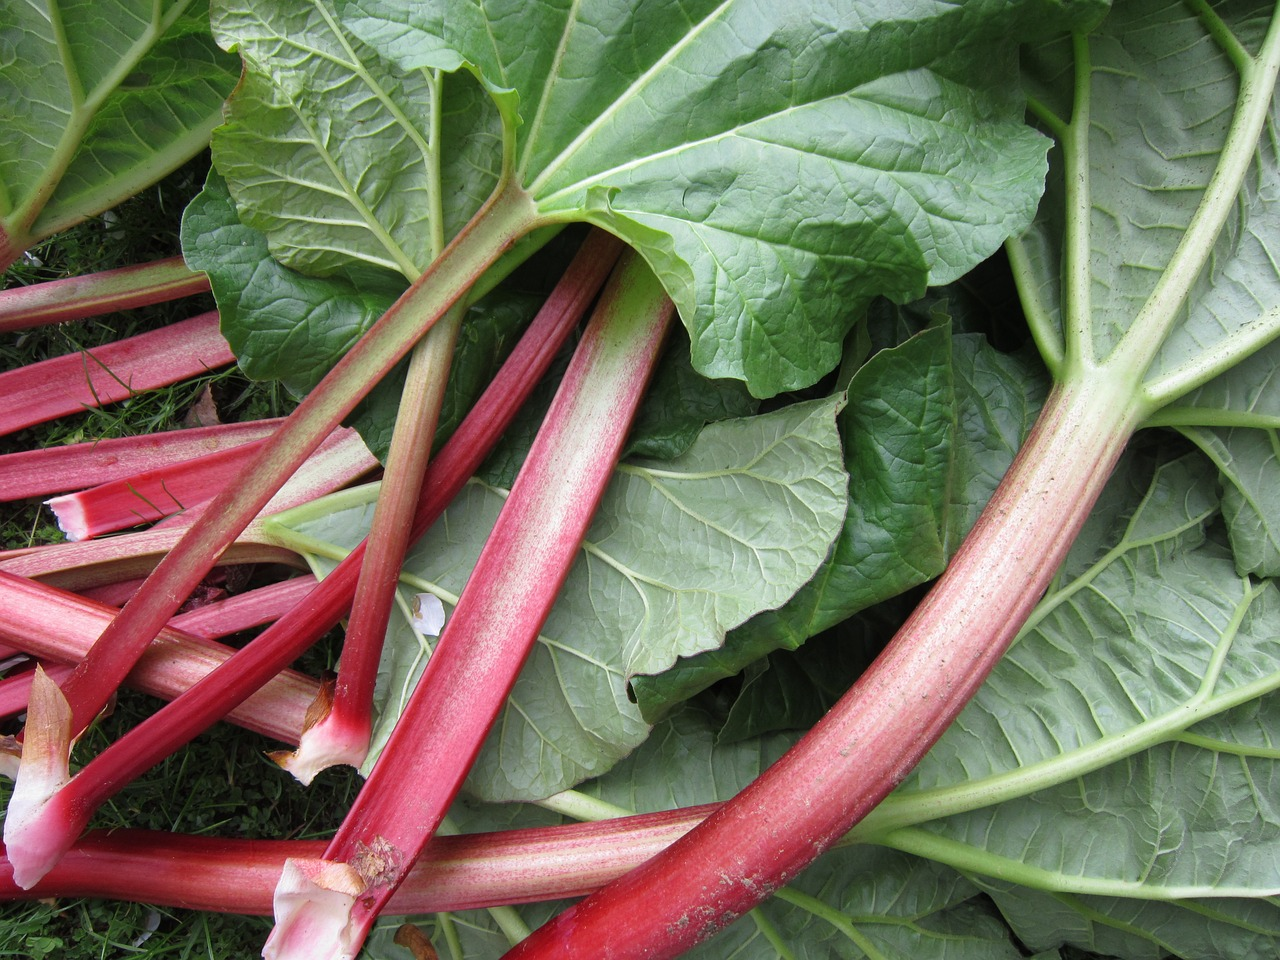 How to Create an Amazing Natural Insecticide from Rhubarb Leaves